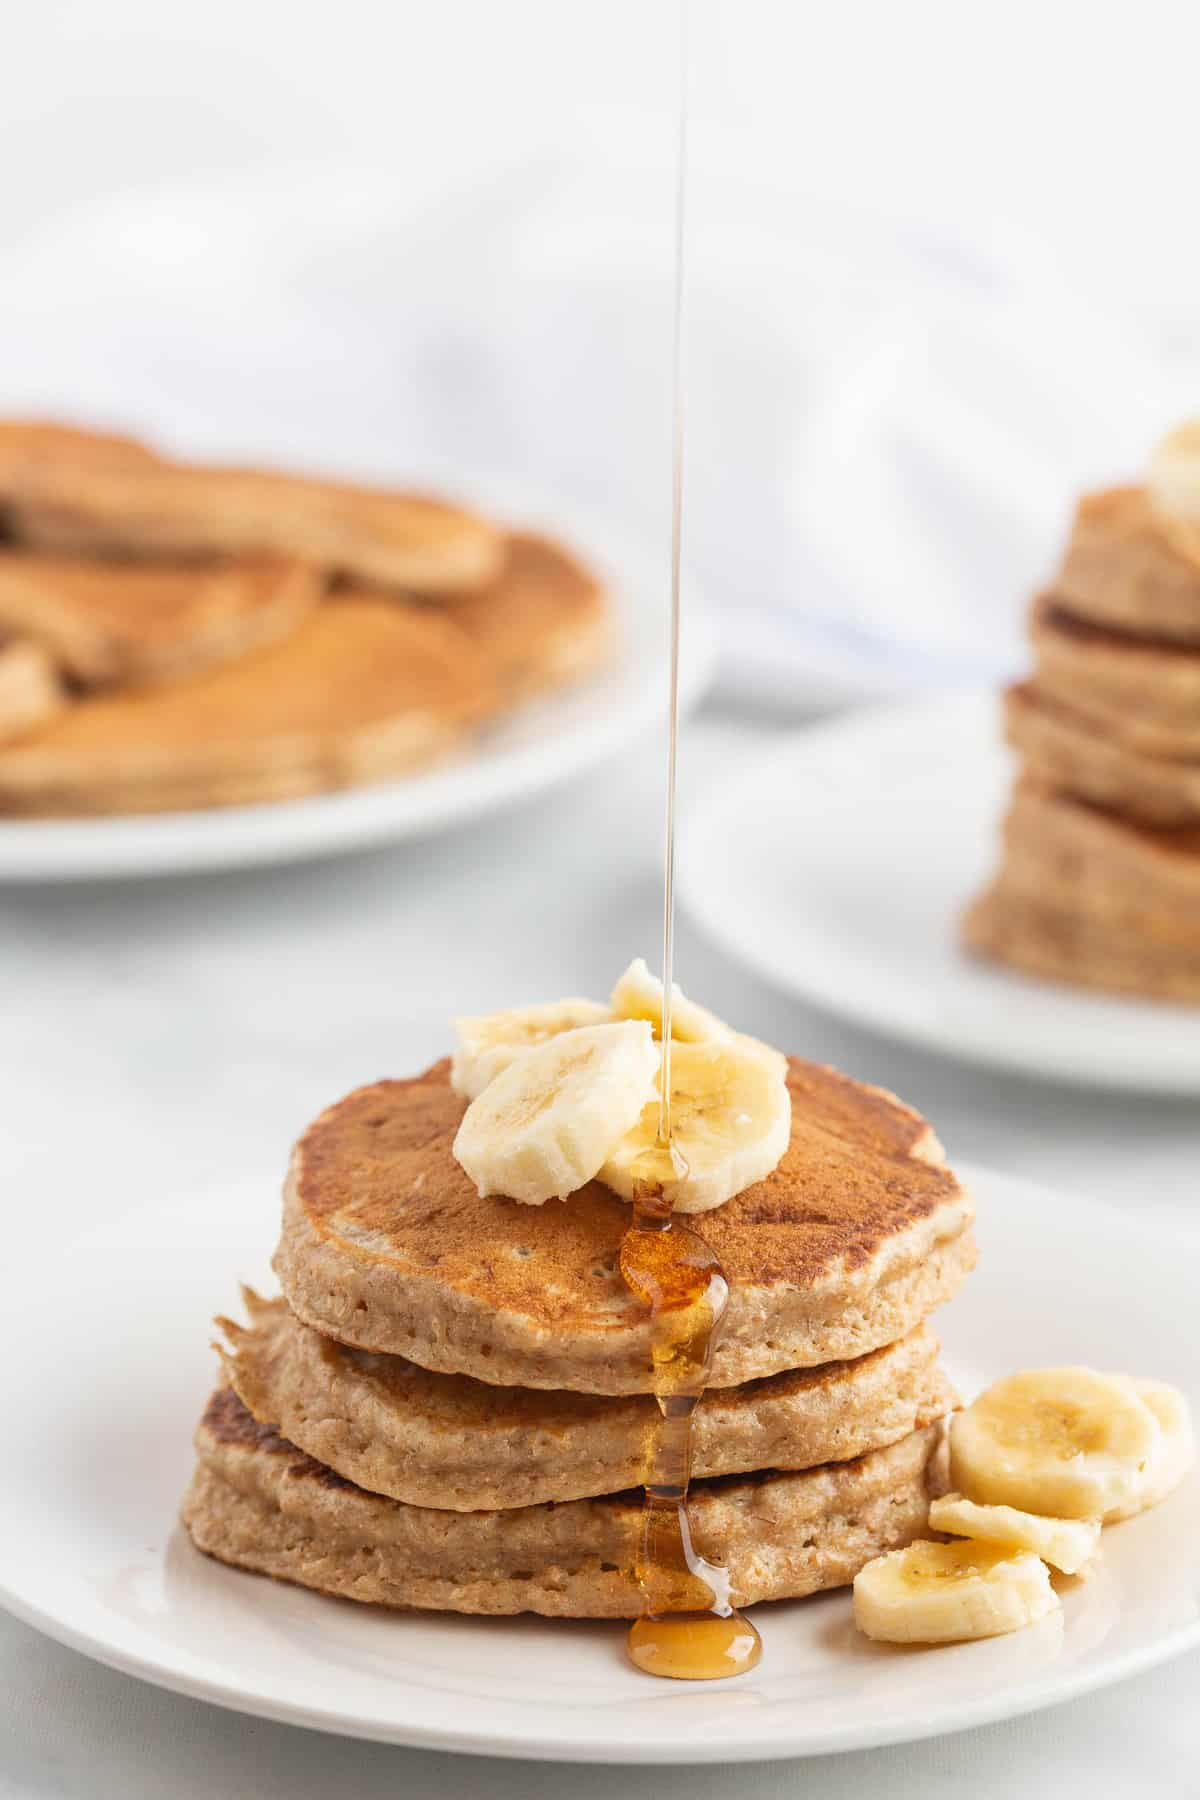 Stack of banana pancakes topped with banana slices and syrup.